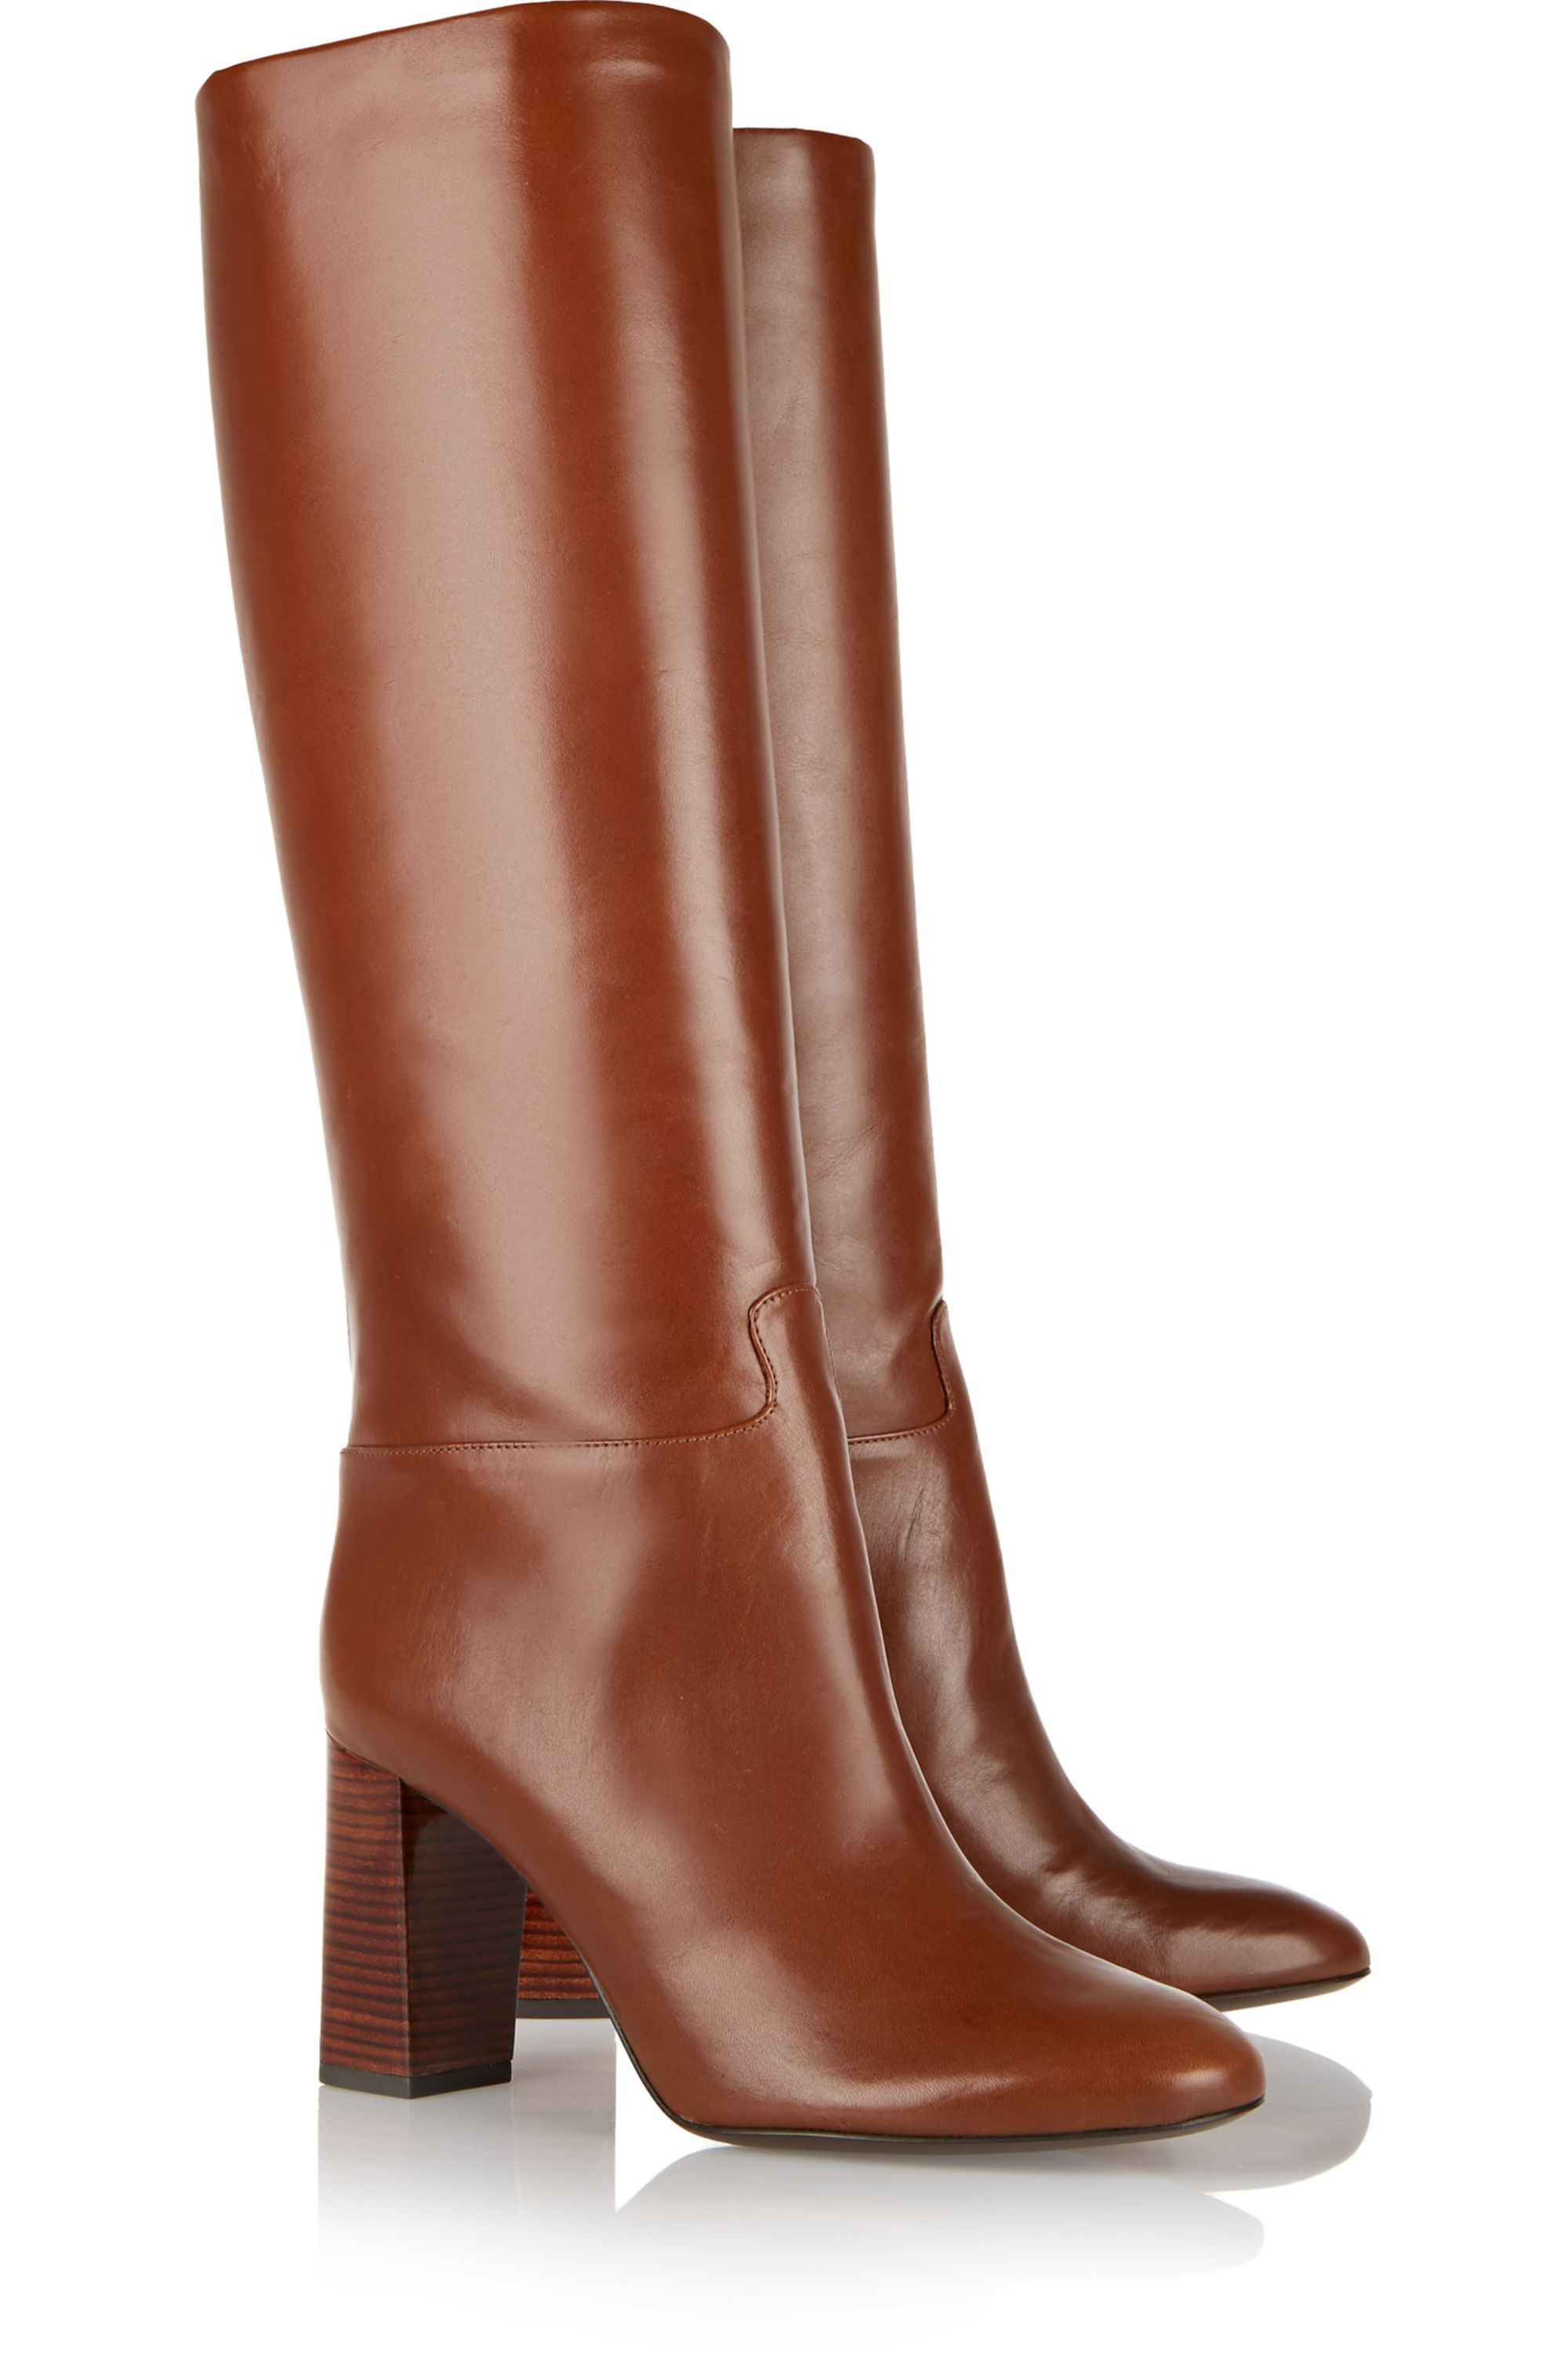 Tory Burch Devon leather knee boots